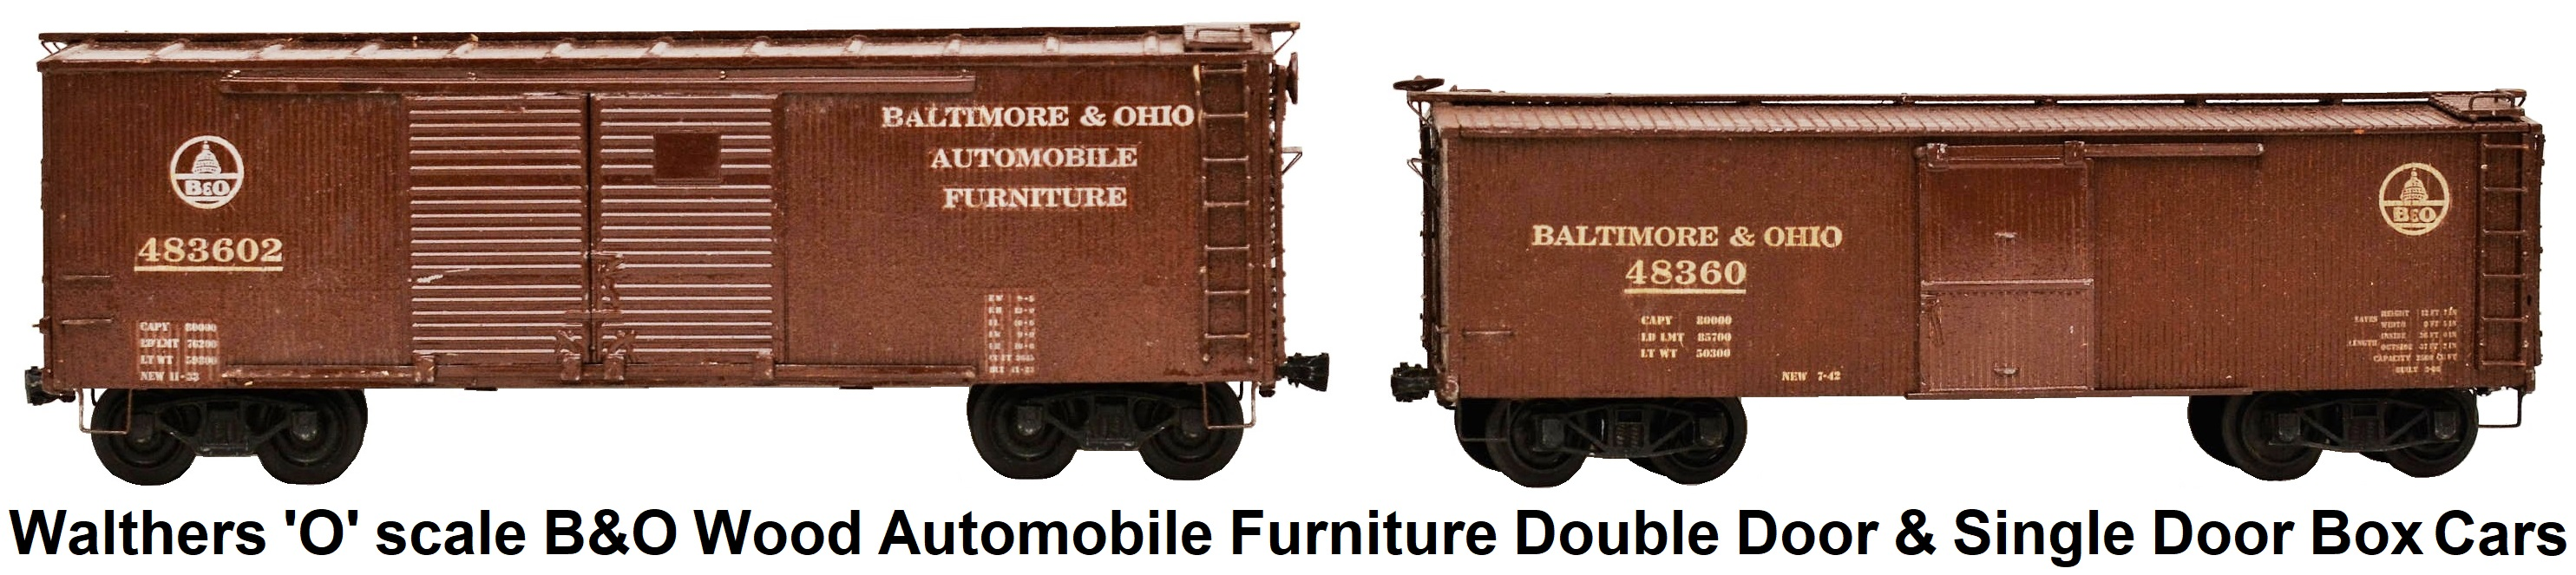 Walthers 'O' scale Kit-built B&O Automobile Furniture Double Door and Single Door Wood Box Cars